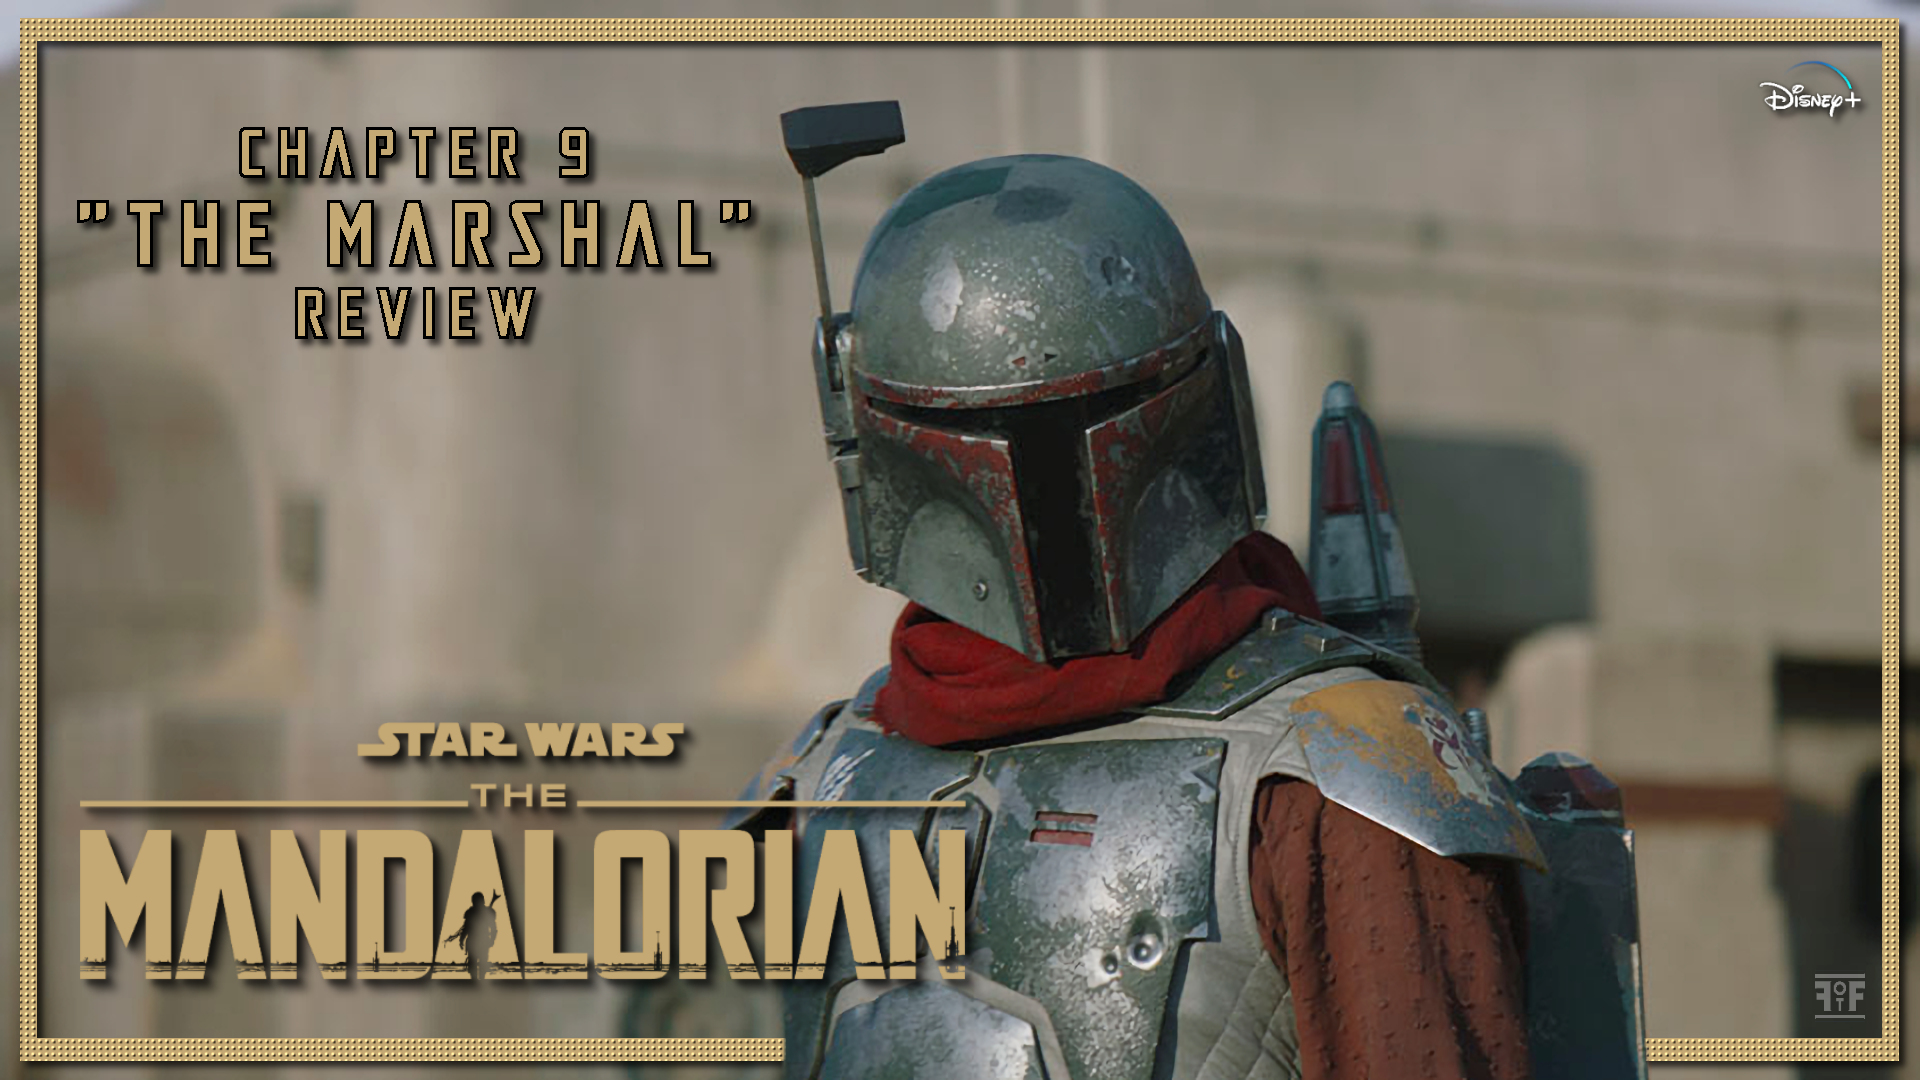 The Mandalorian Chapter 9 The Marshal Review